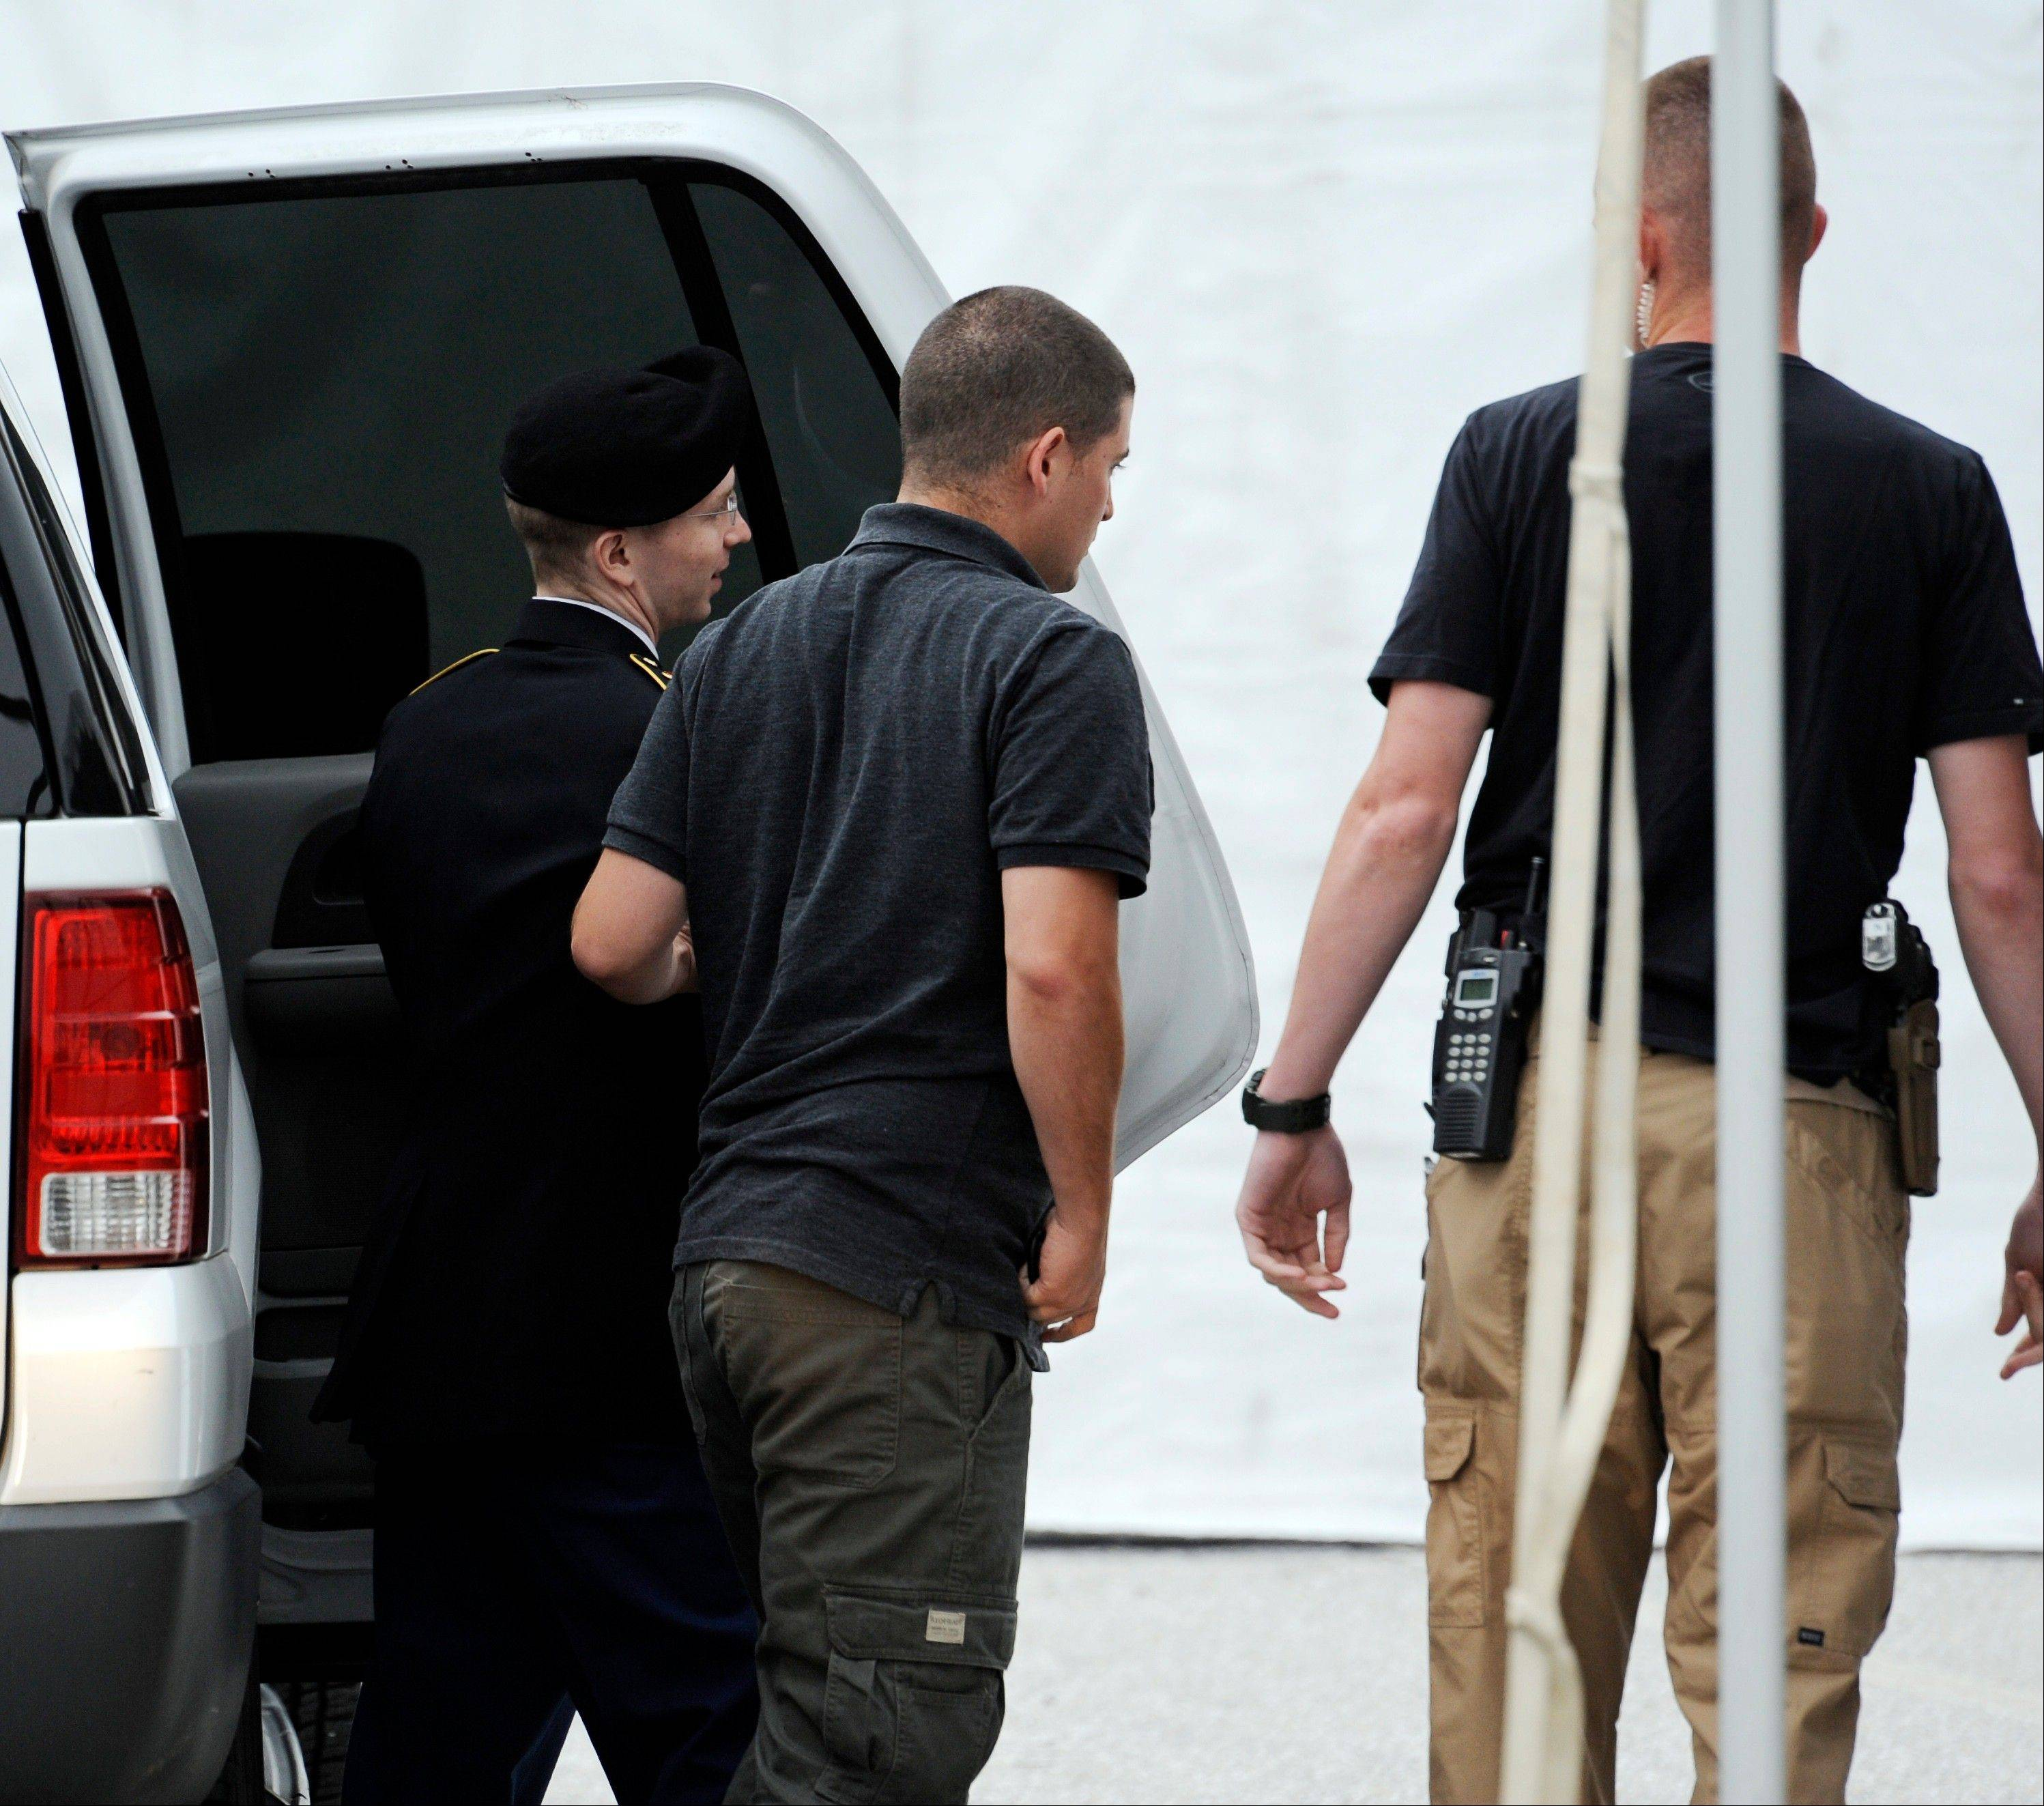 Army Pfc. Bradley Manning, left, is escorted into a courthouse for his court-martial at Fort Mead, Md., Thursday, July 25, 2013. Manning is charged with indirectly aiding the enemy by sending troves of classified material to WikiLeaks. He faces up to life in prison.